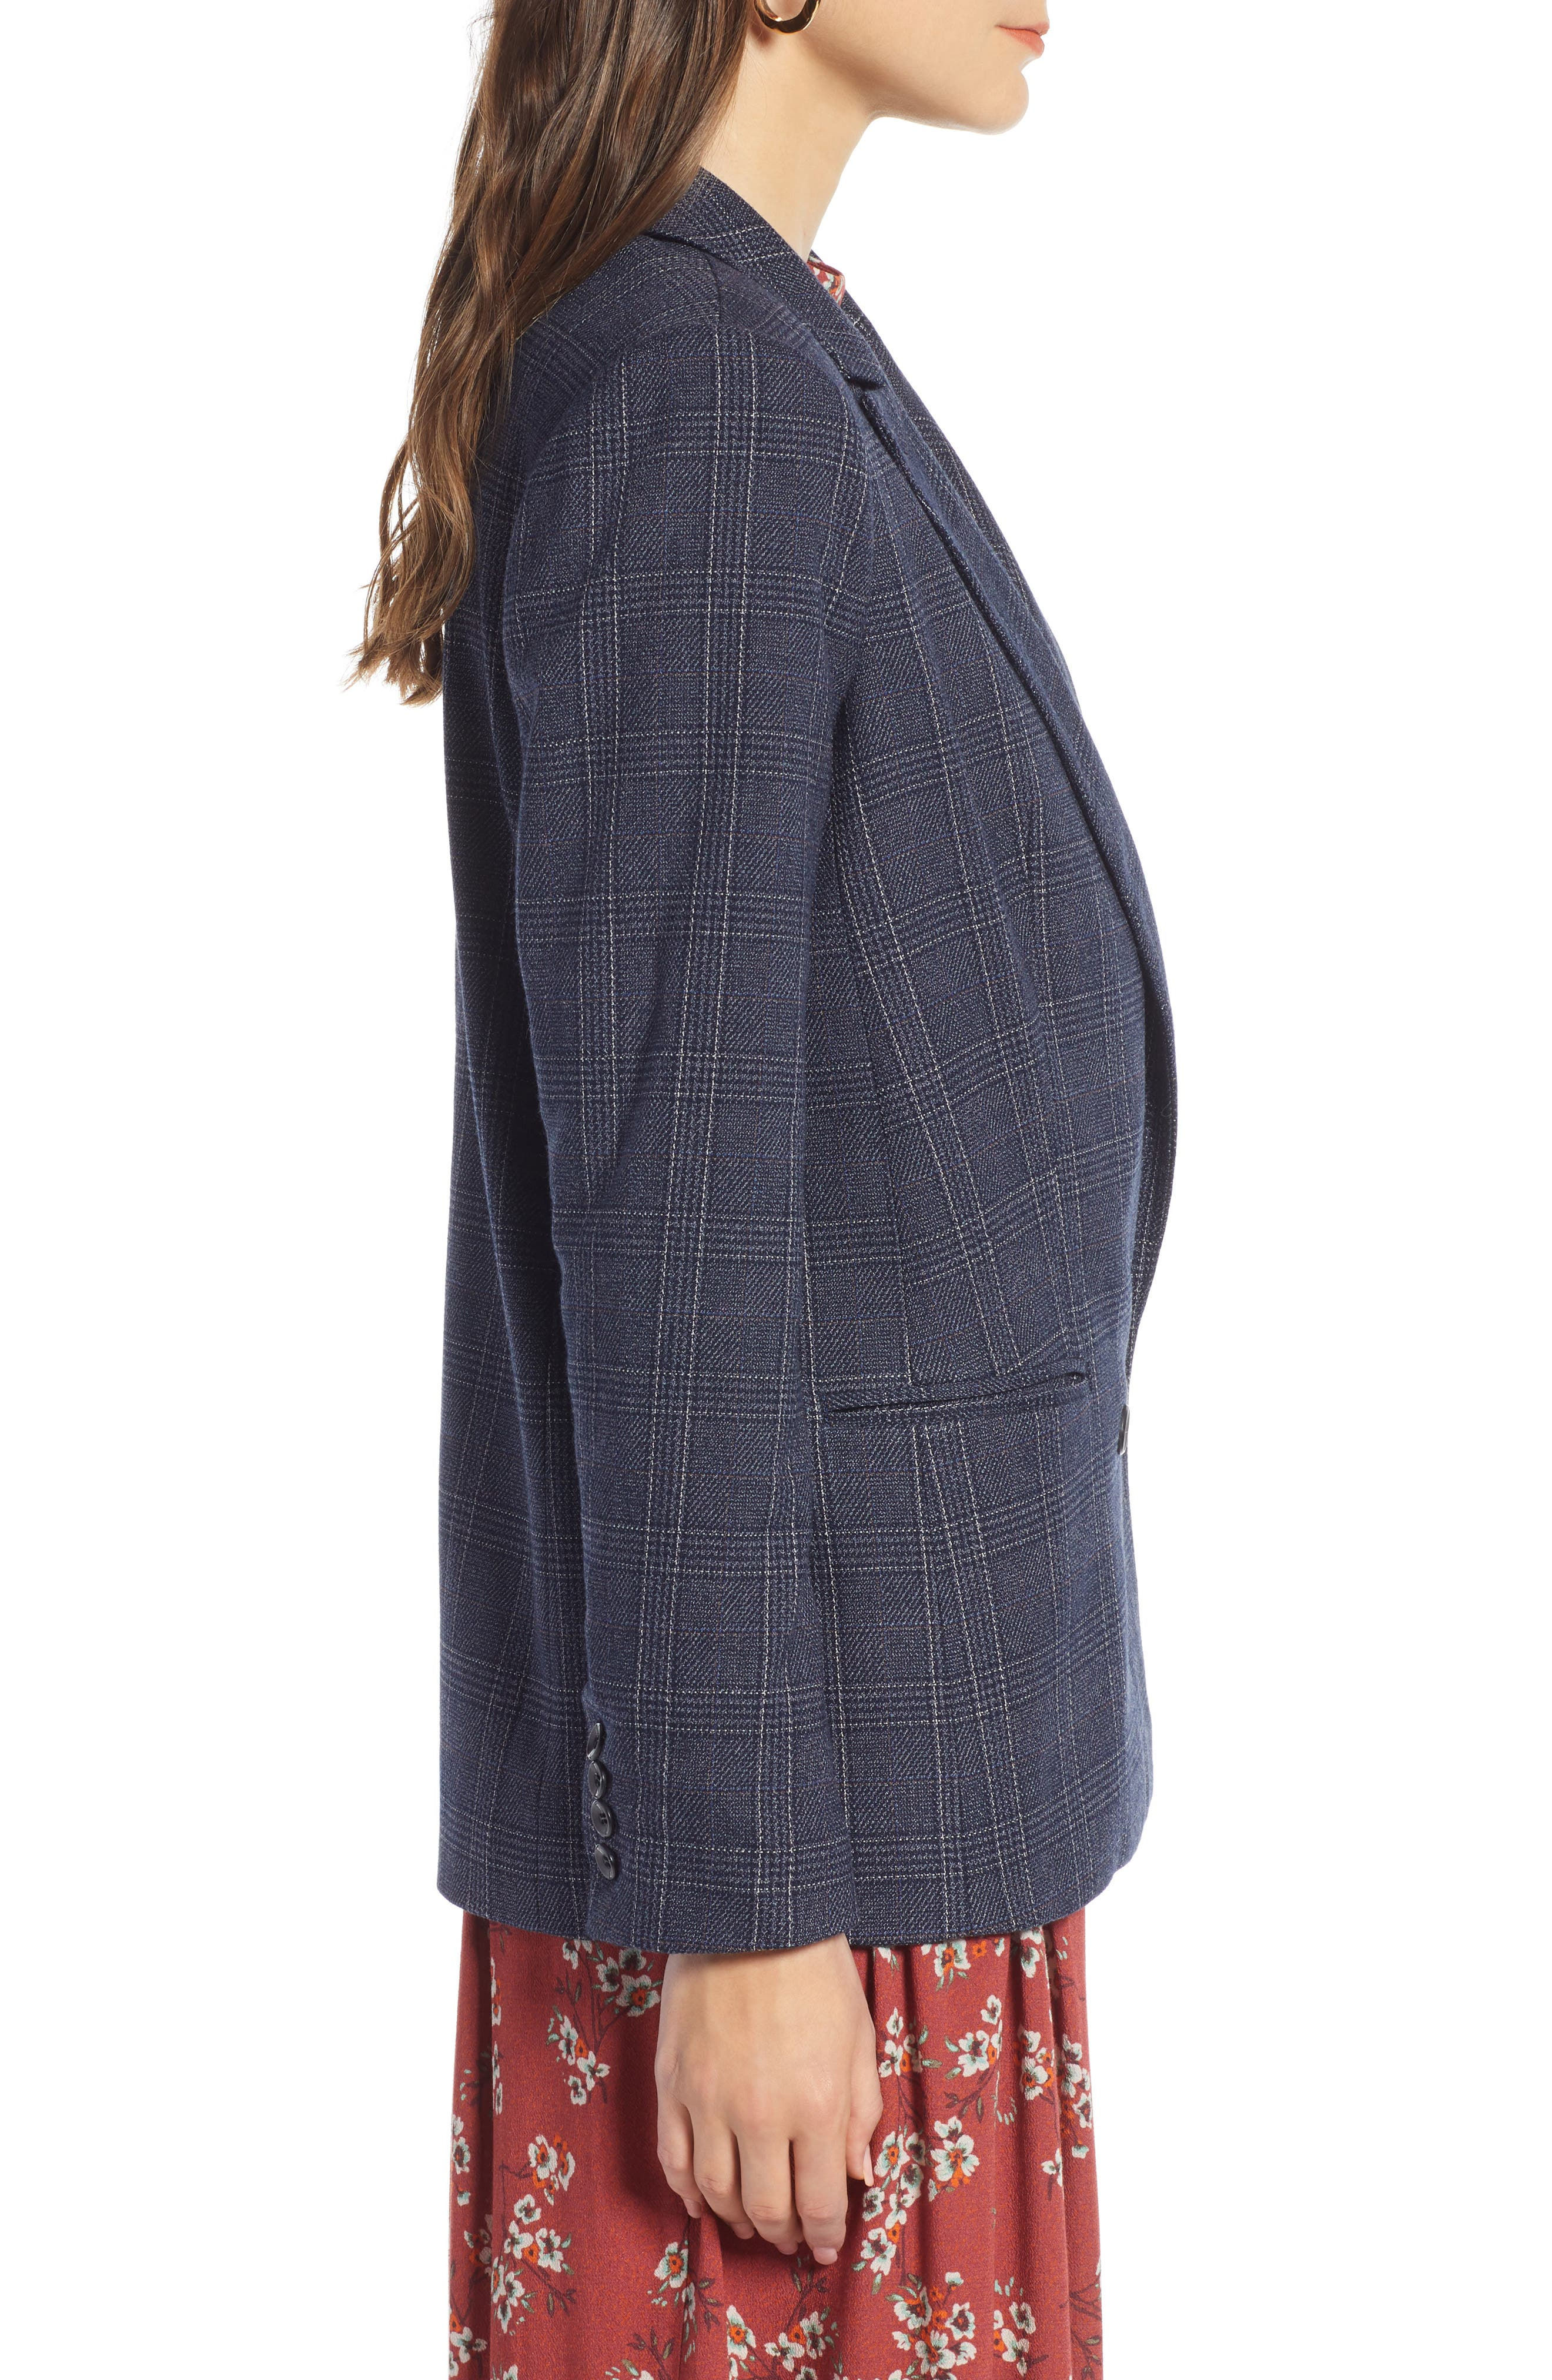 TREASURE & BOND,                             Plaid Double Breasted Blazer,                             Alternate thumbnail 3, color,                             NAVY MULTI PLAID